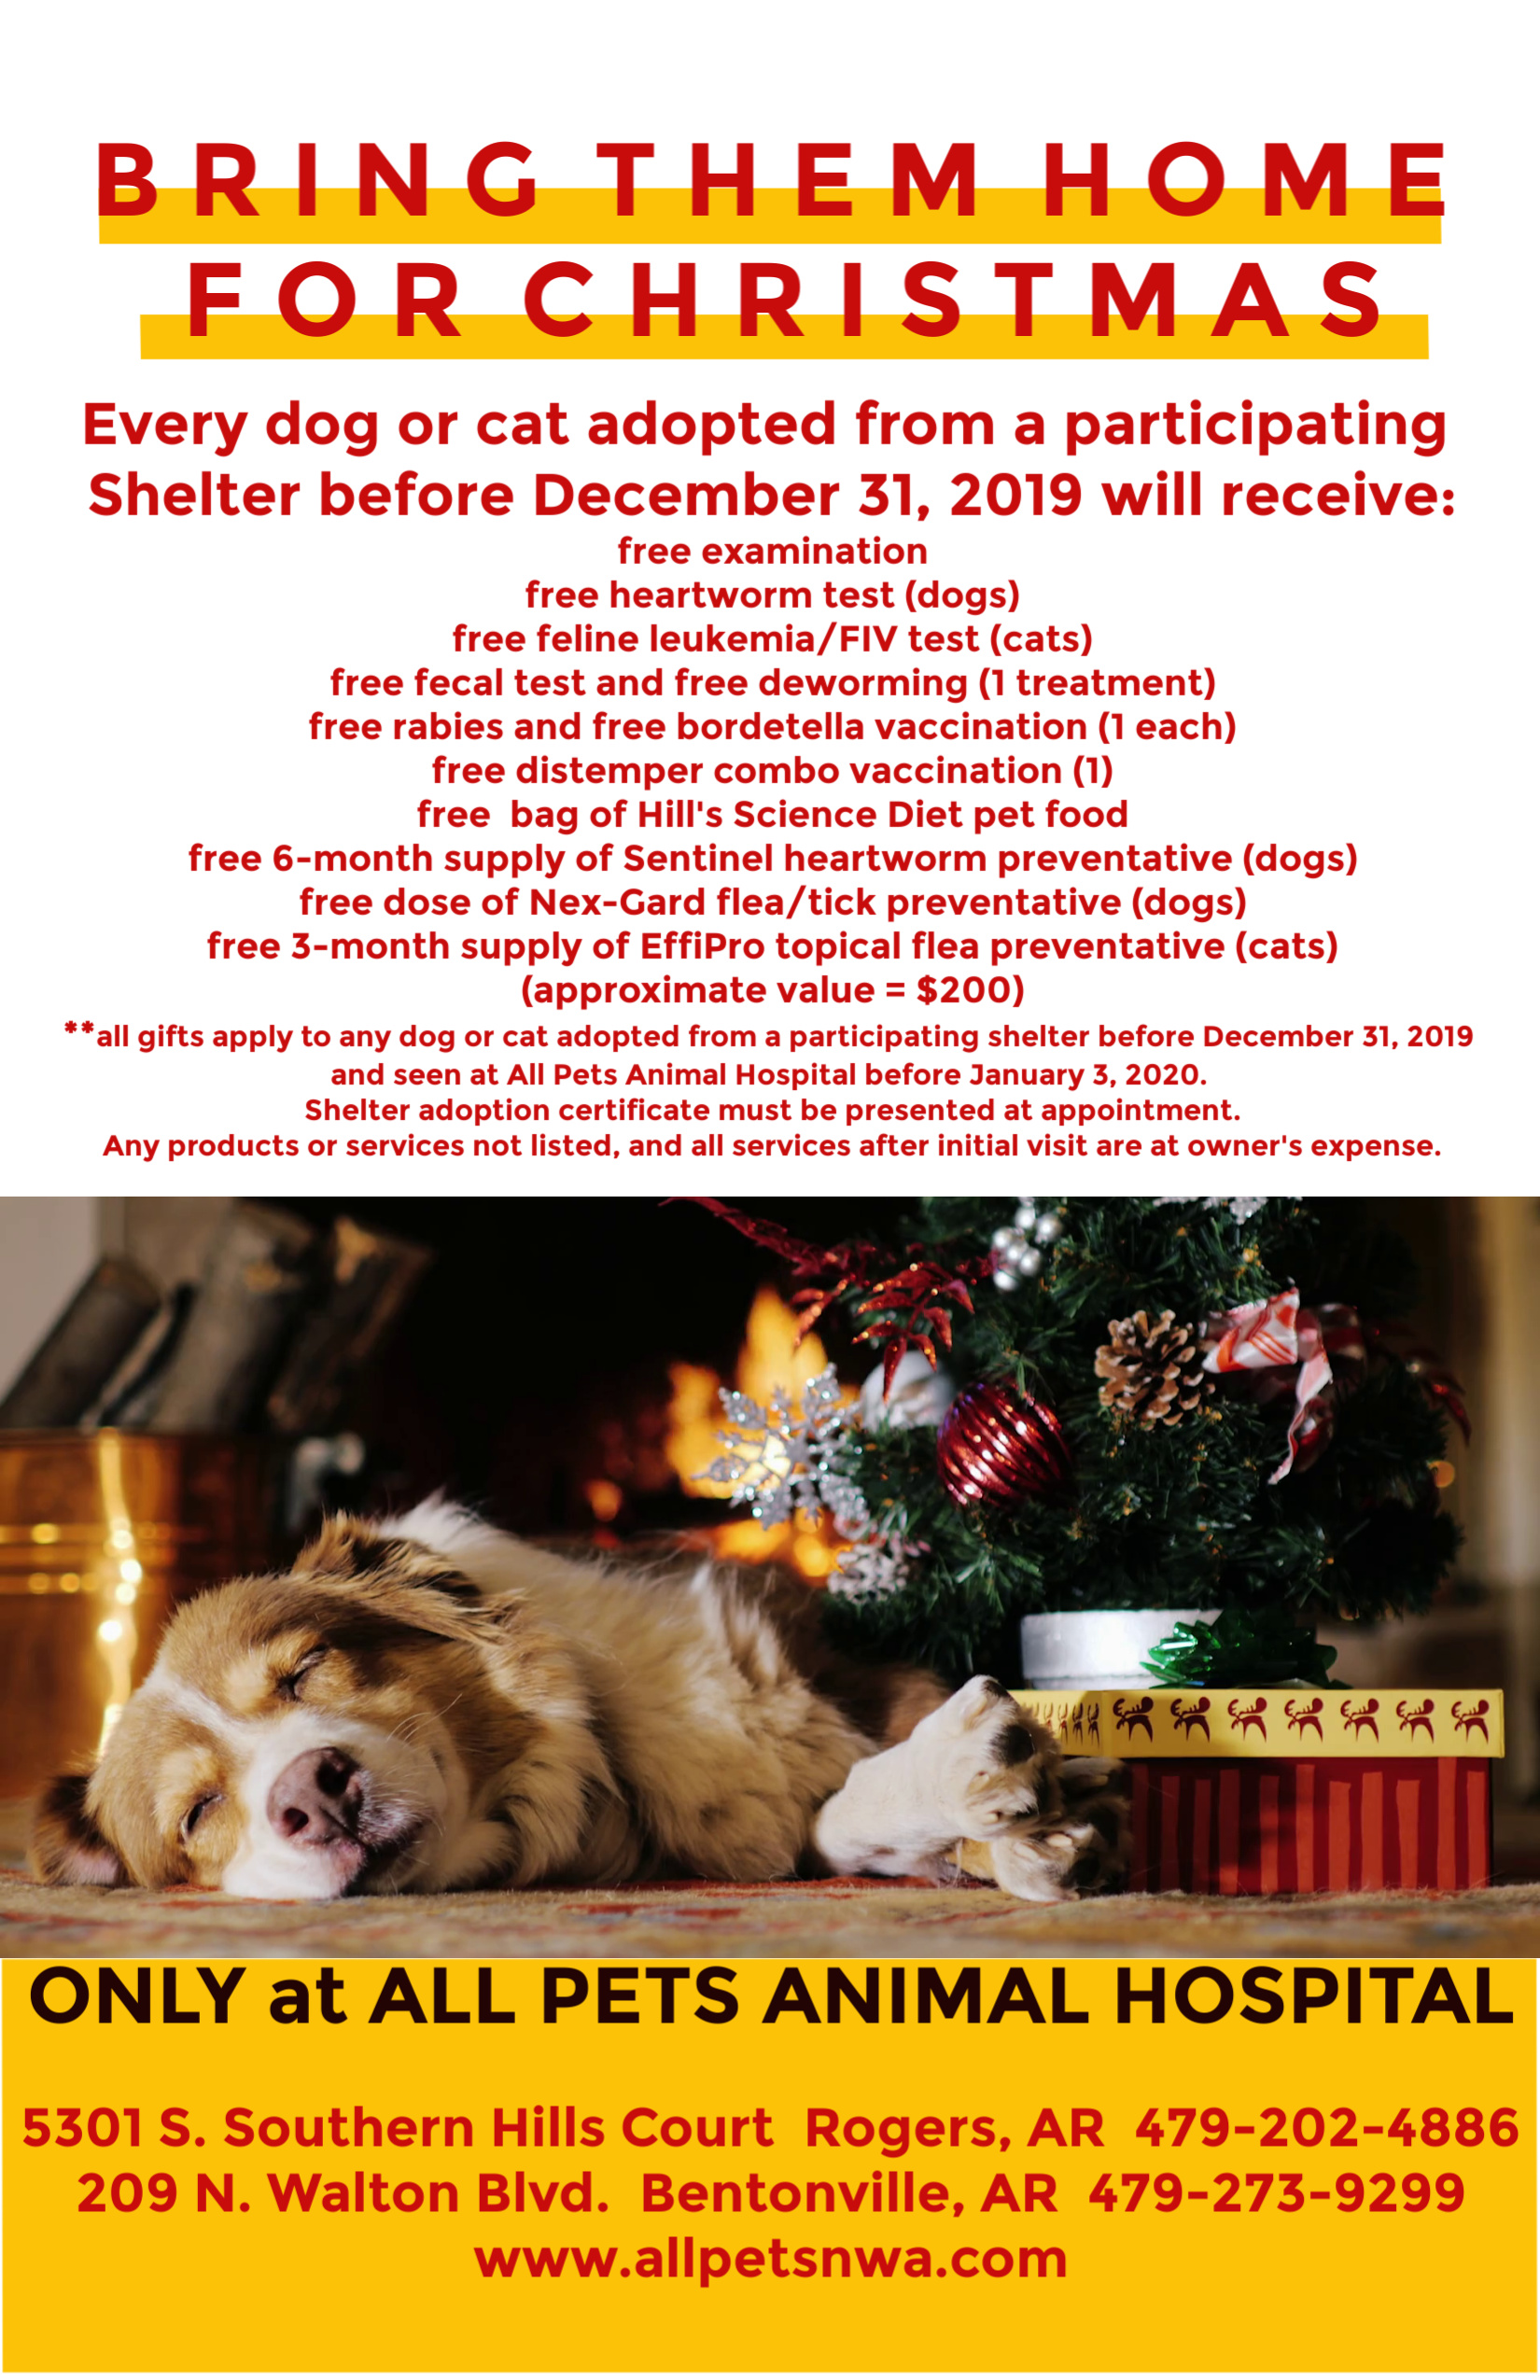 2019Bring Them Home for Christmas Back PRESS RELEASE copy